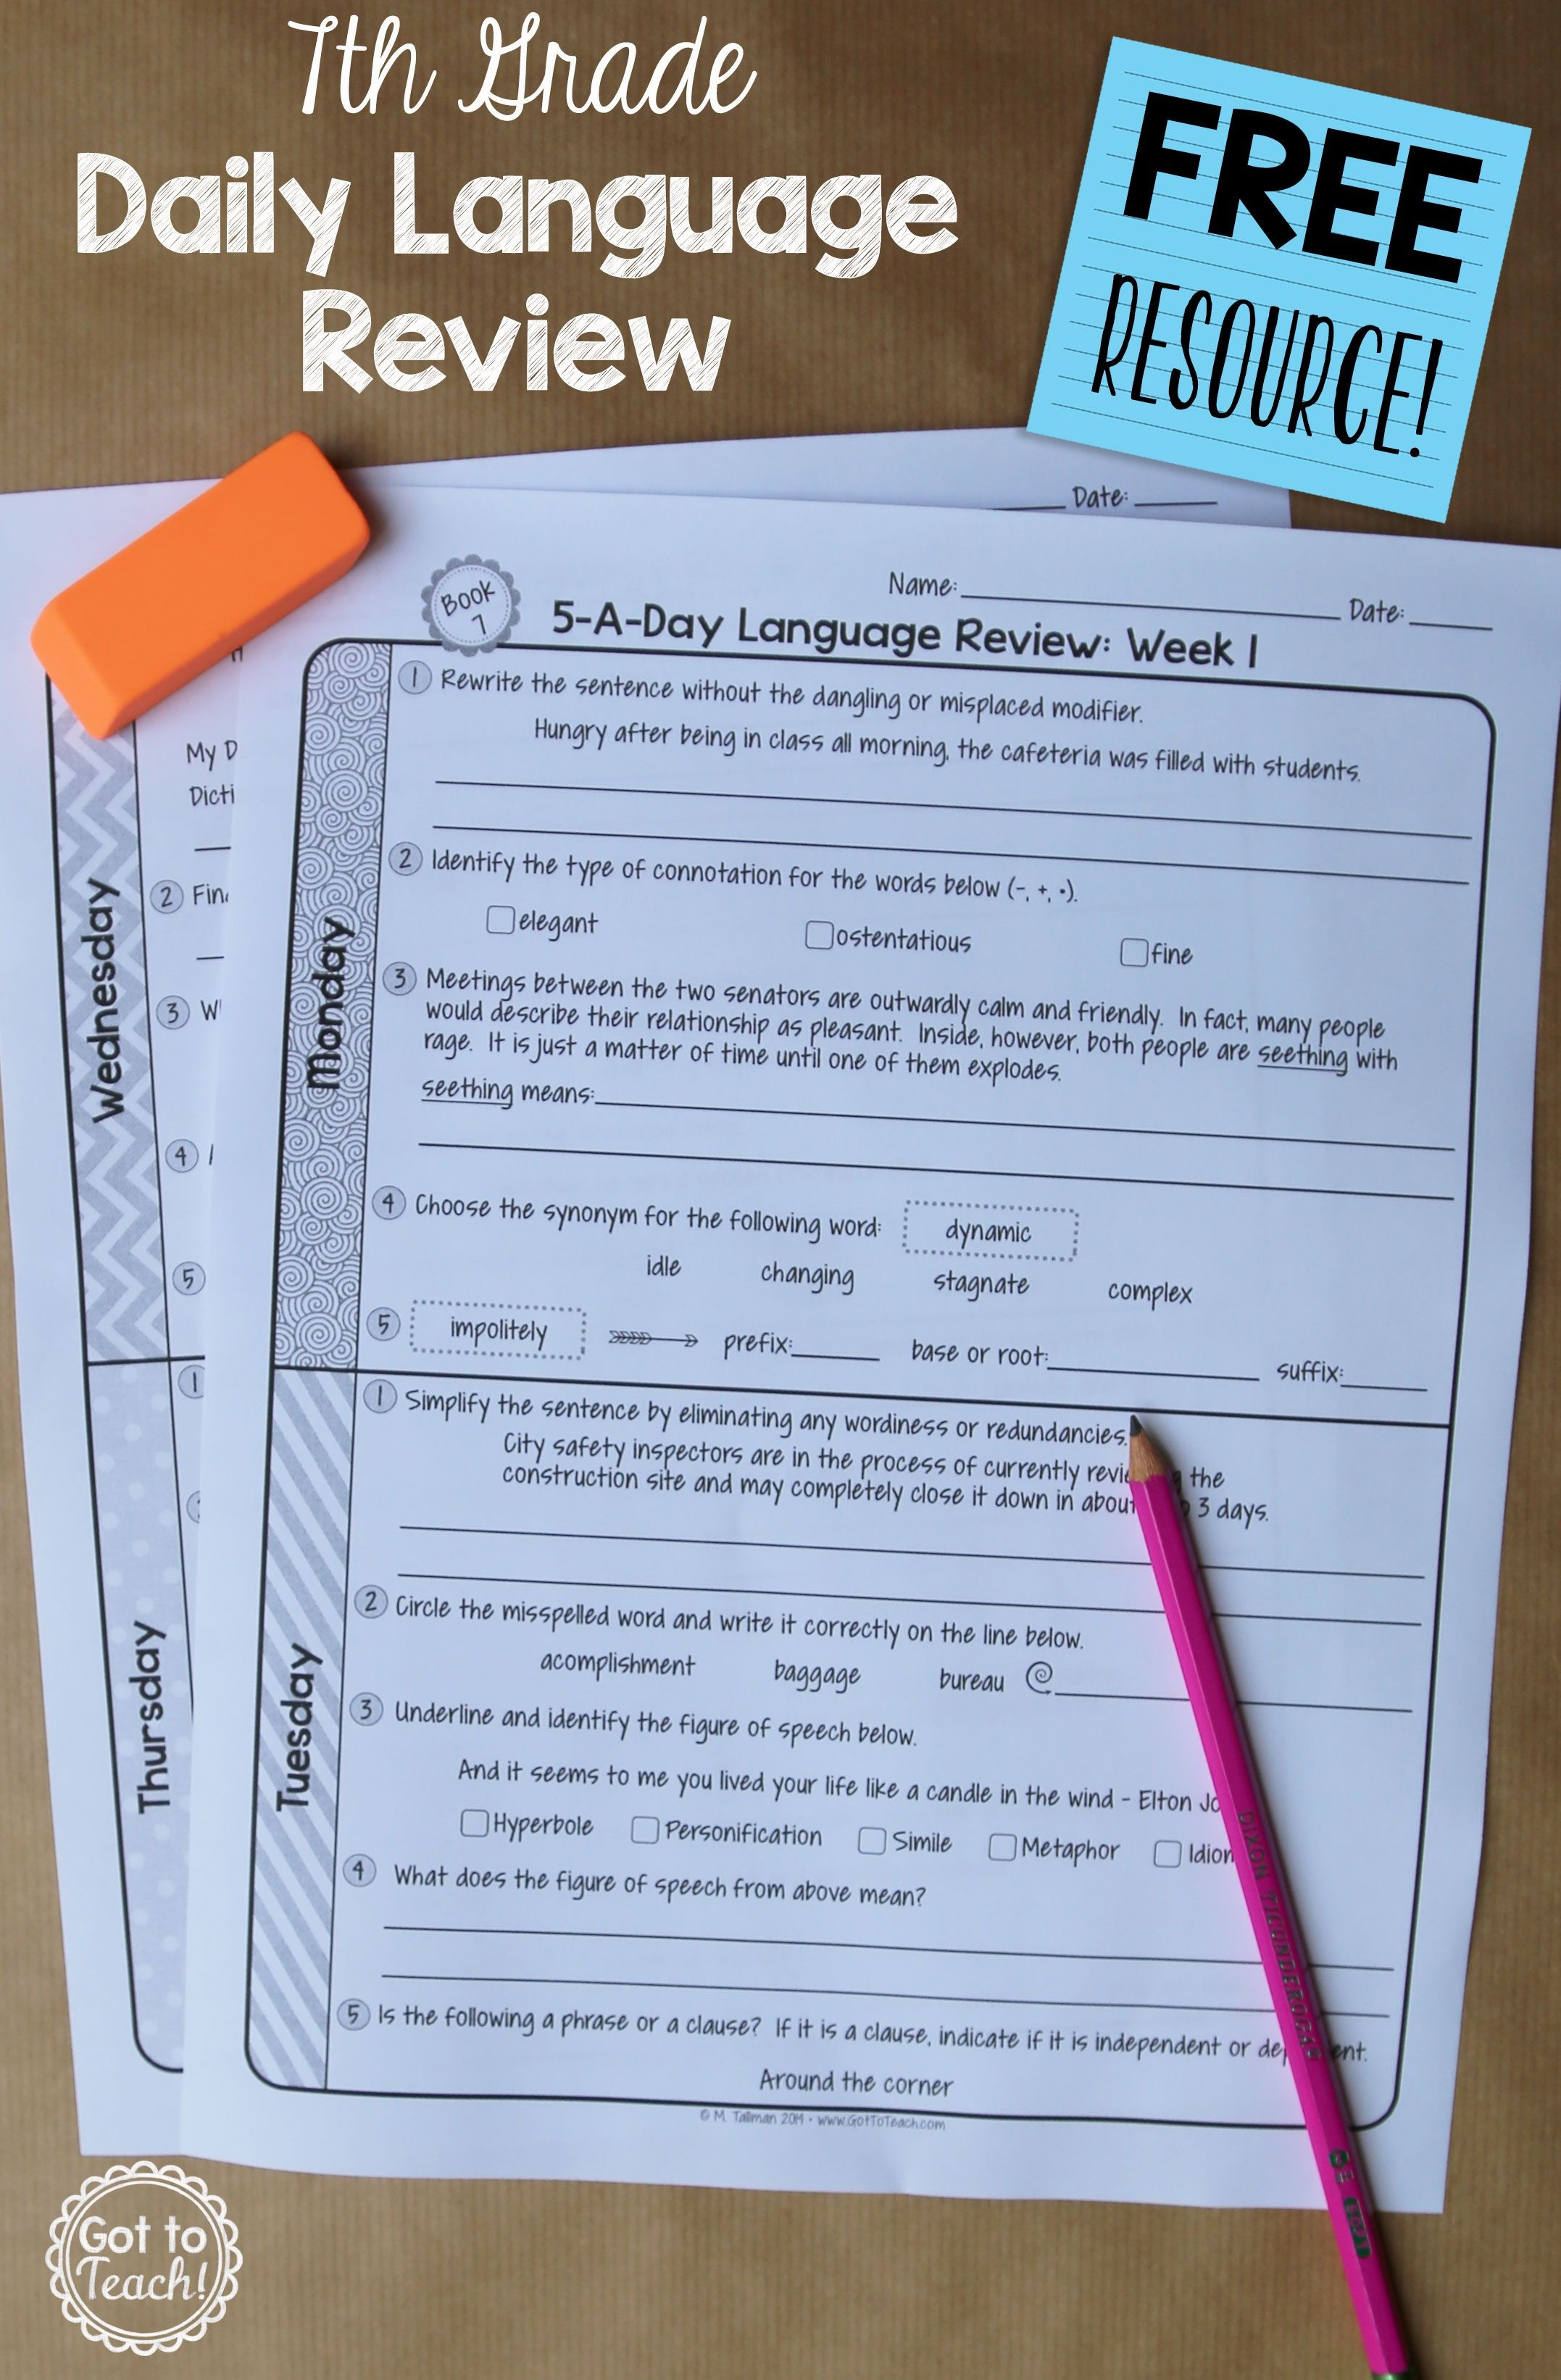 7Th Grade Daily Language Review - 1 Week Free | Middleschoolmaestros - Daily Language Review Grade 5 Free Printable